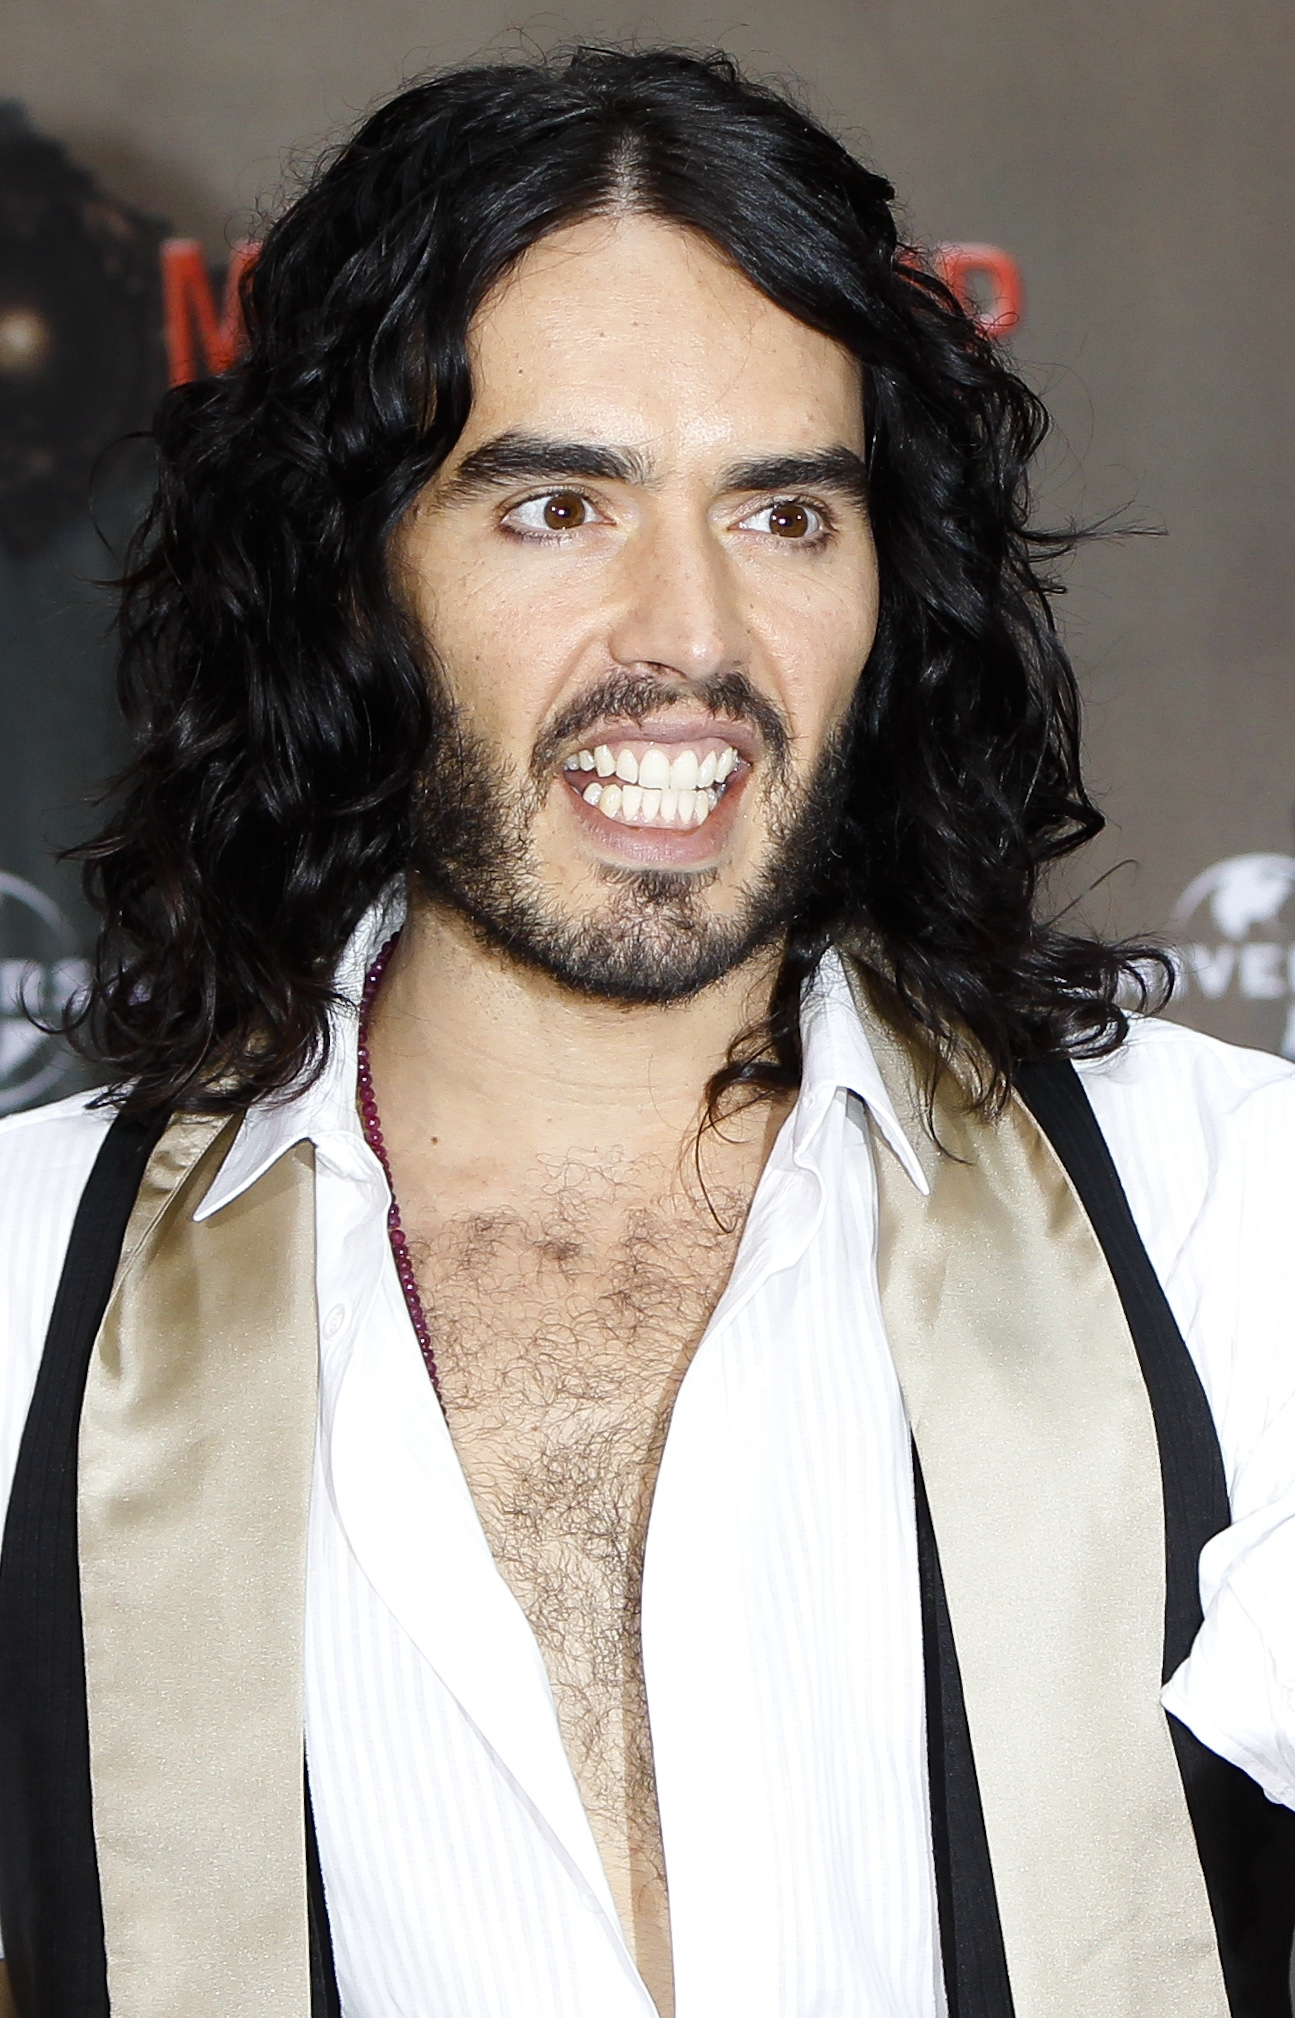 """Thanks for your sweet messages of support. After the tips I picked up in chokey I'm an infinitely more proficient criminal,"" Russell Brand tweeted after he was arrested following an altercation with a paparazzo at Los Angeles International Airport. Brand claims the photographer was trying to take a picture up his fiancée Katy Perry's skirt. He was charged with misdemeanor battery and is out on $20,000 bail with an Oct. 15 court date. (AP Photo/Markus Schreiber)"